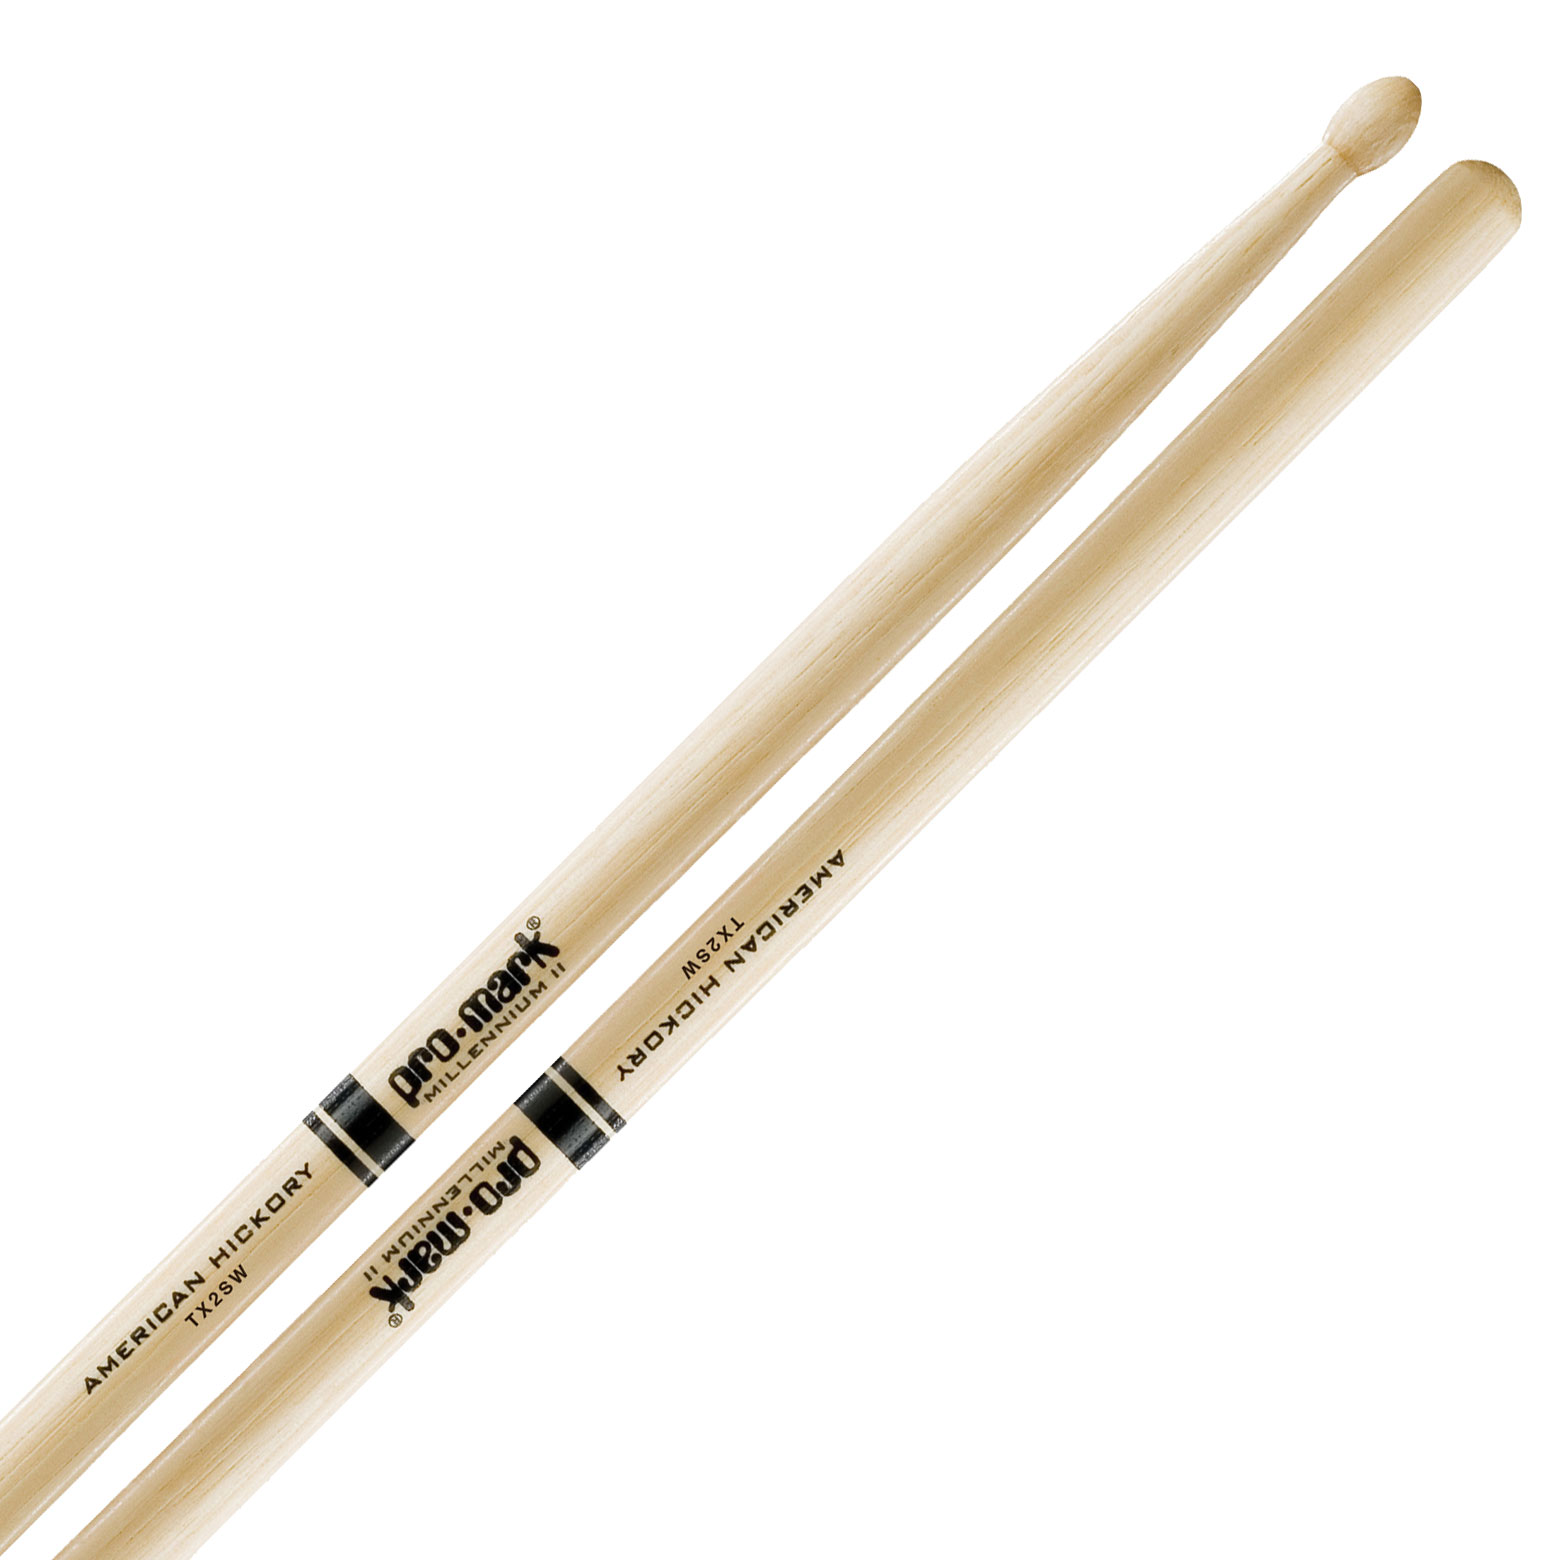 Promark American Hickory 2S Wood Tip Drumsticks